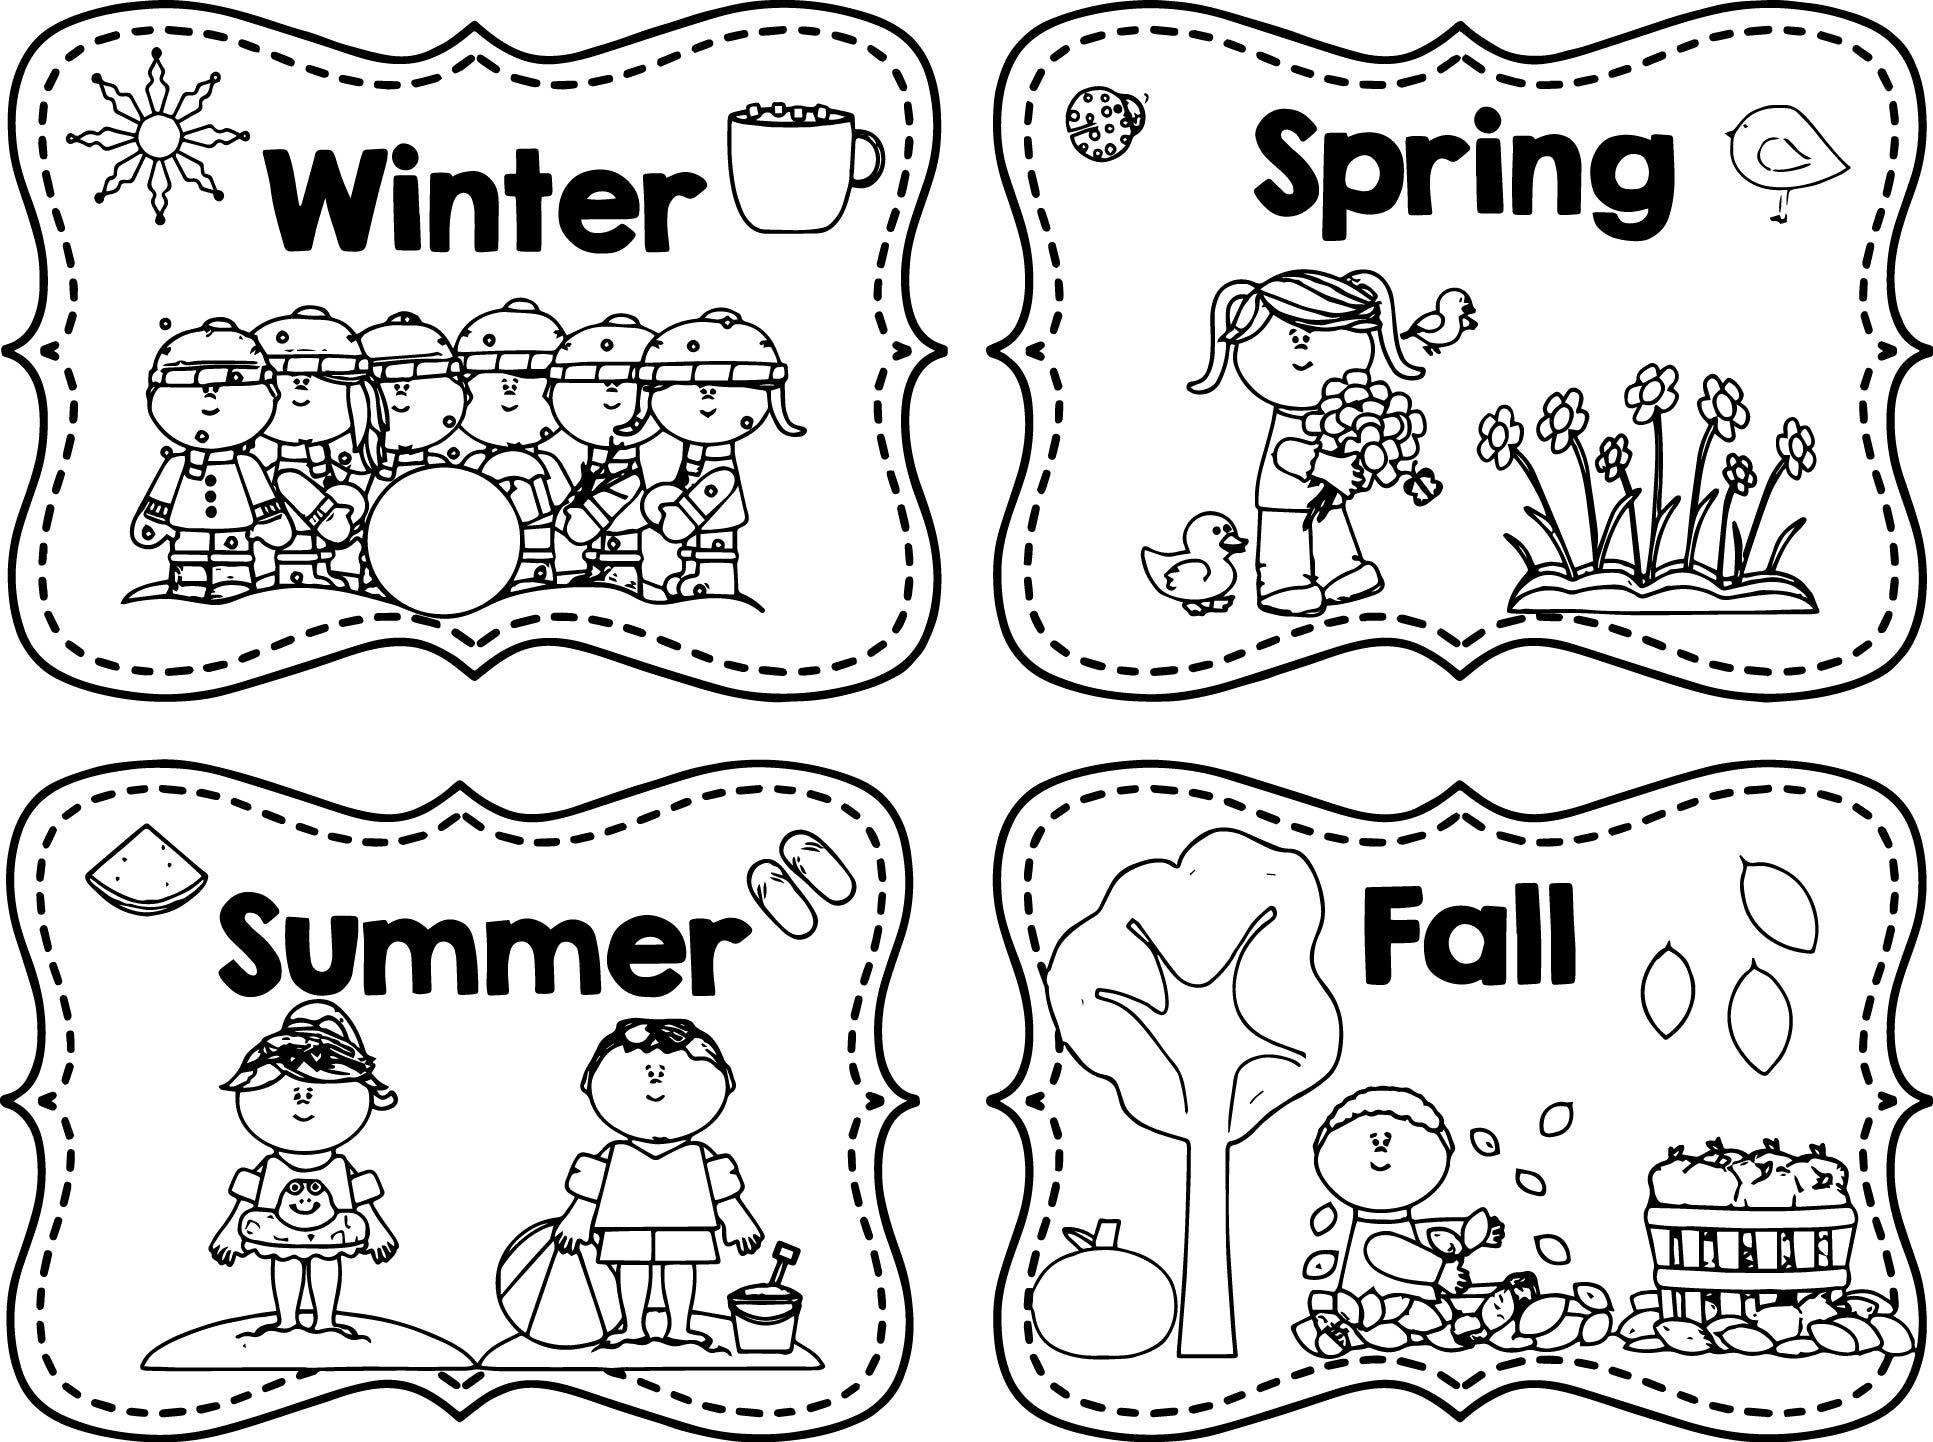 4 Seasons Coloring Pages To Print